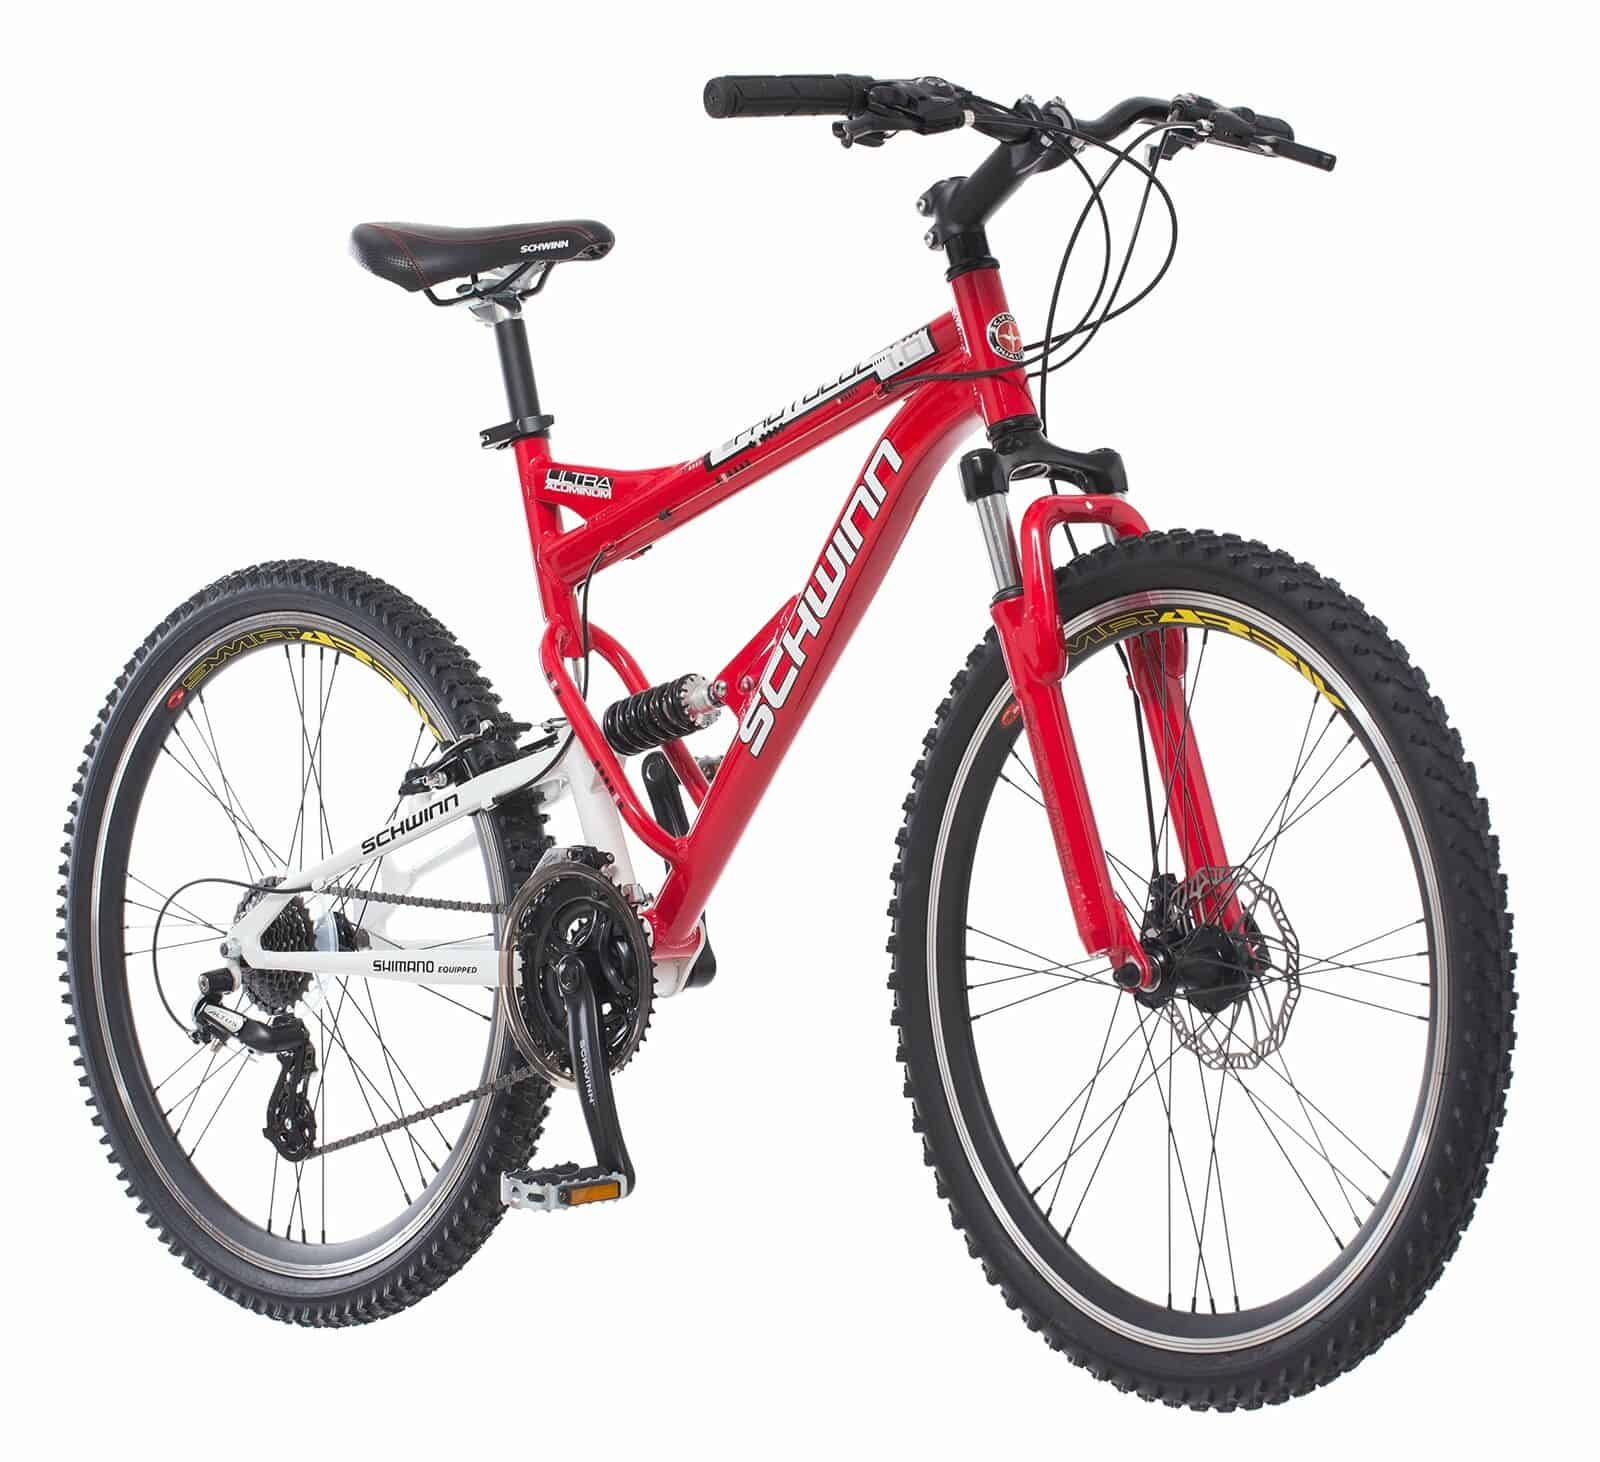 Schwinn Protocol 1.0 Dual-Suspension Mountain Bike with Aluminum Frame 26-Inch Wheels